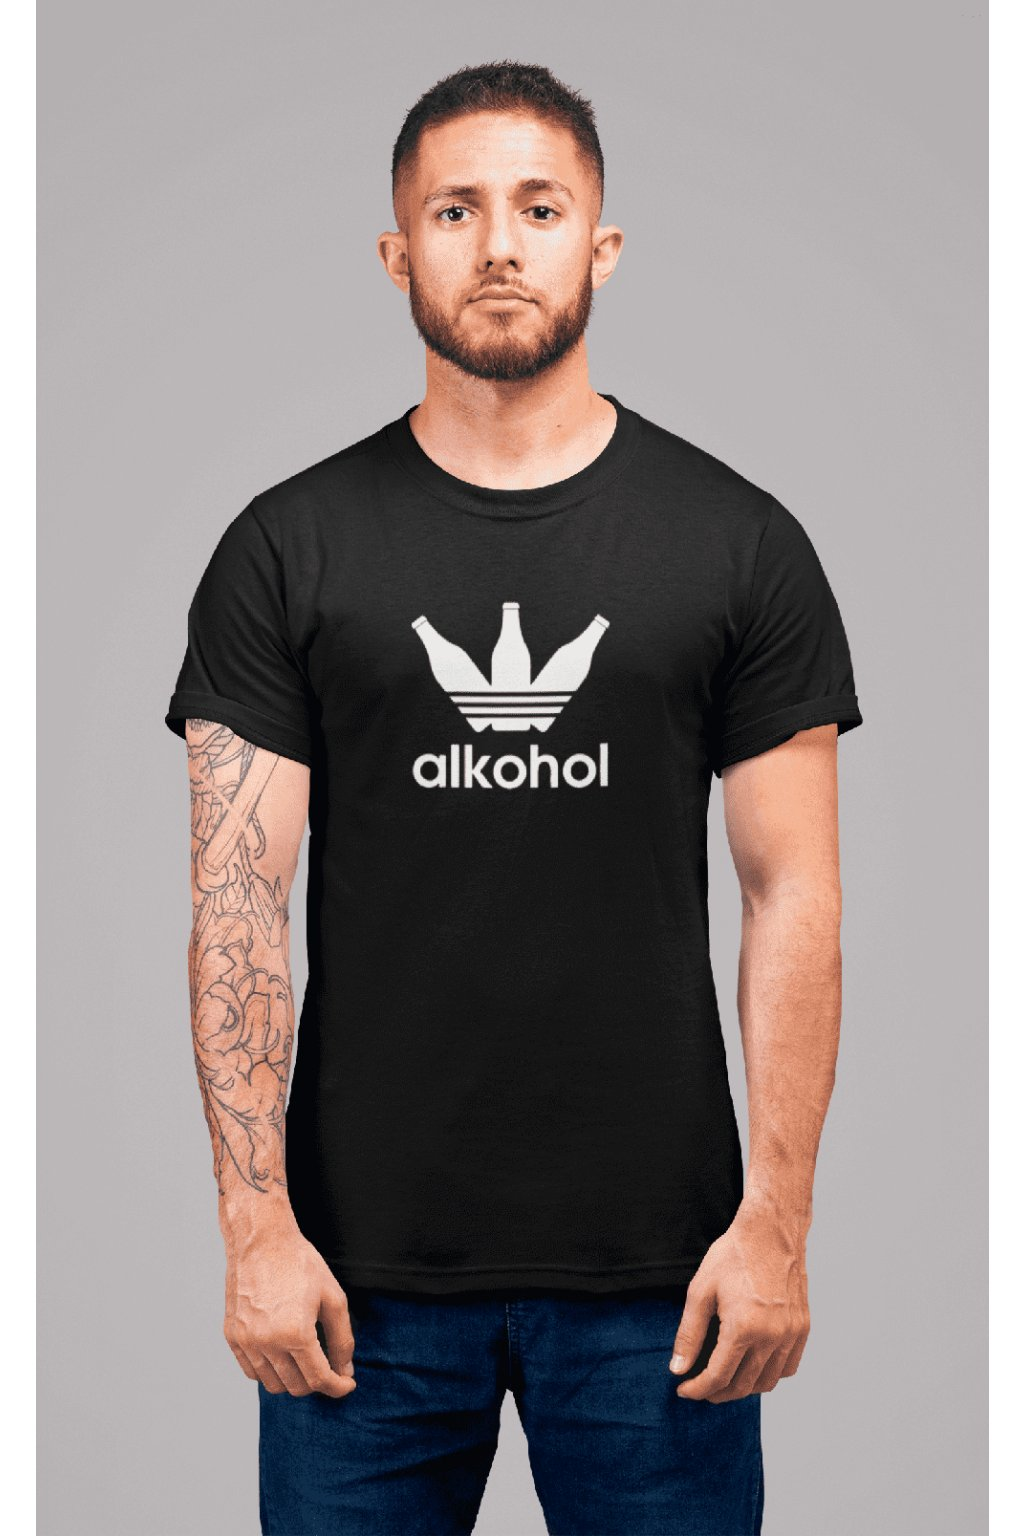 t shirt mockup of a redhead man with tattoos standing in a studio 22340 (14)